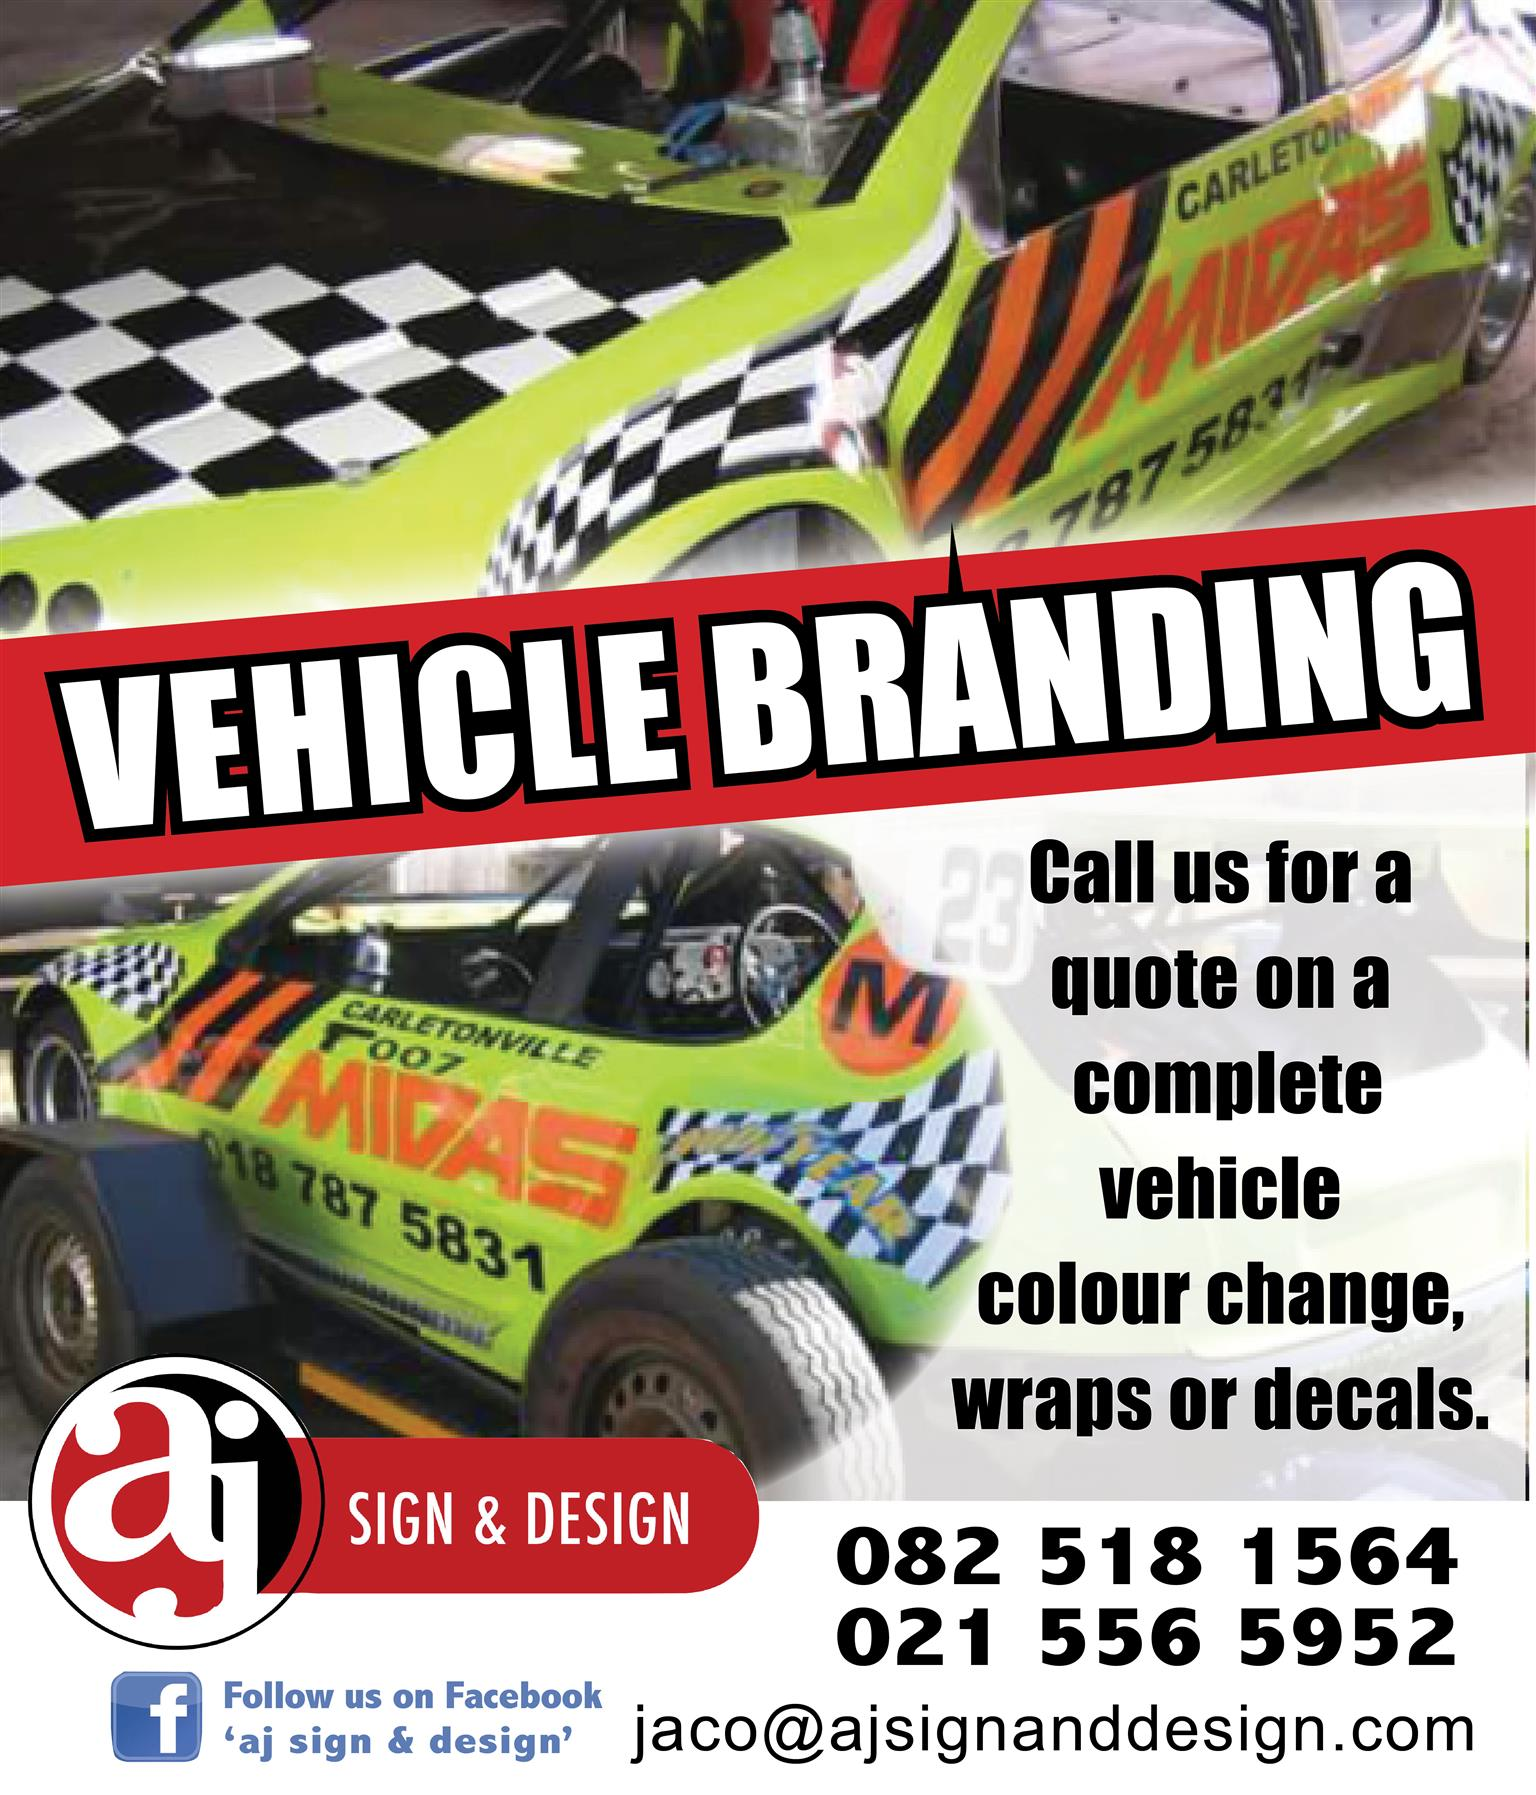 vehicle branding, contra vision on windows, decals or complete wraps.